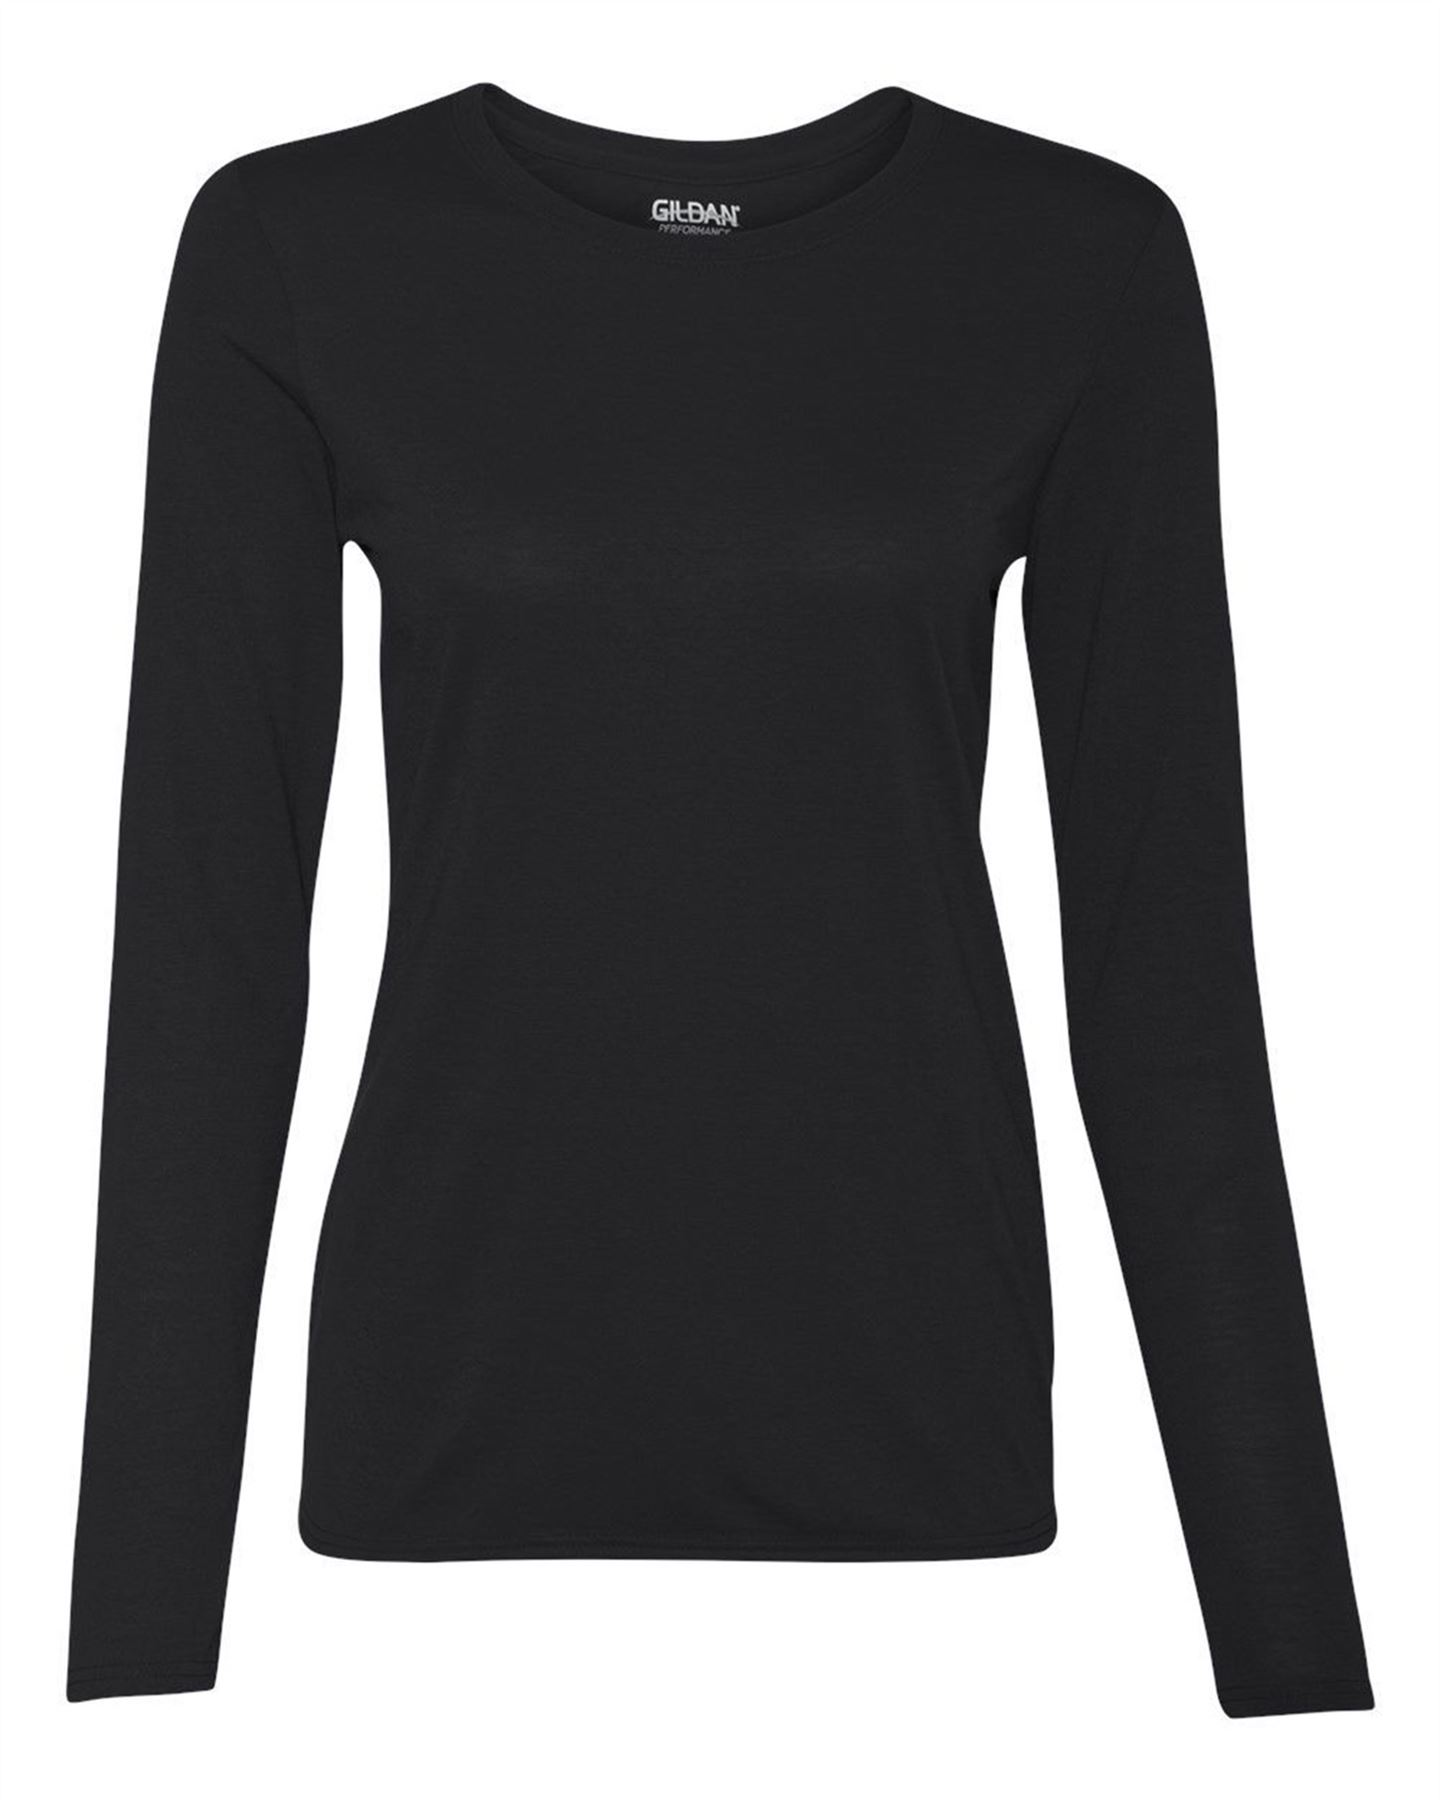 Gildan performance womens ladies t shirt long sleeve crew for Women s crew t shirts